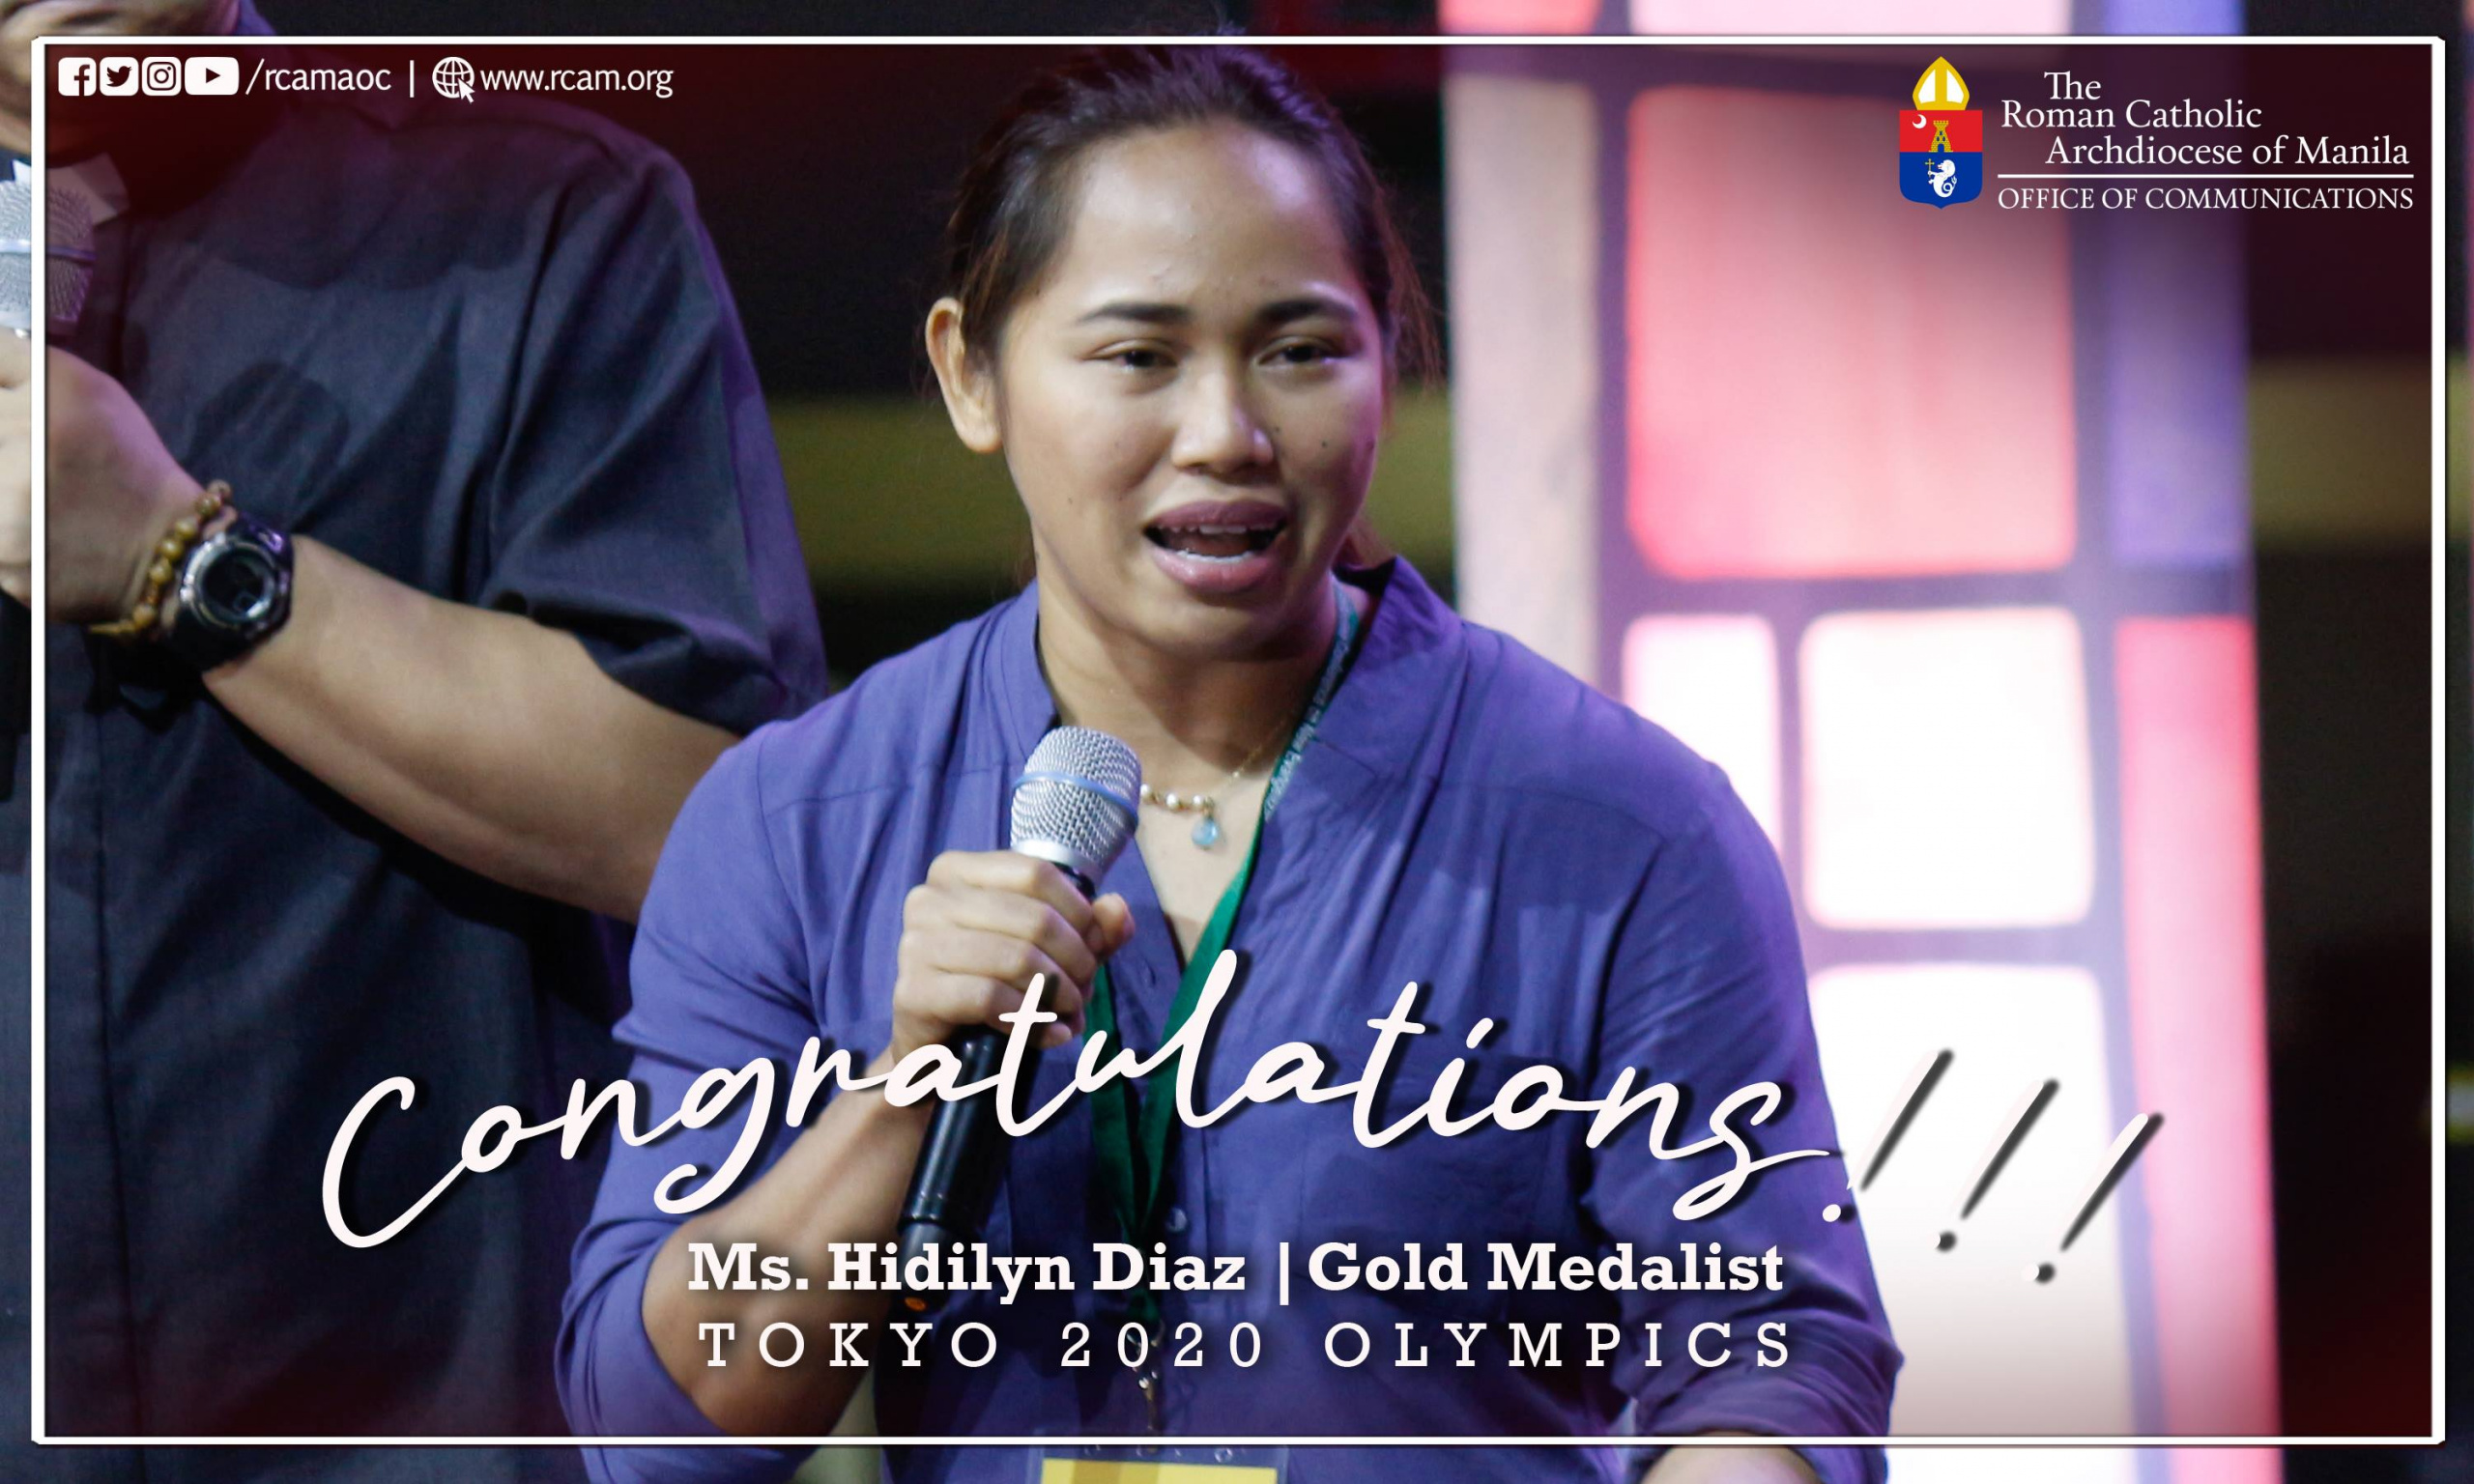 Archdiocese of Manila congratulates Hidilyn Diaz for first Olympic Gold Medal